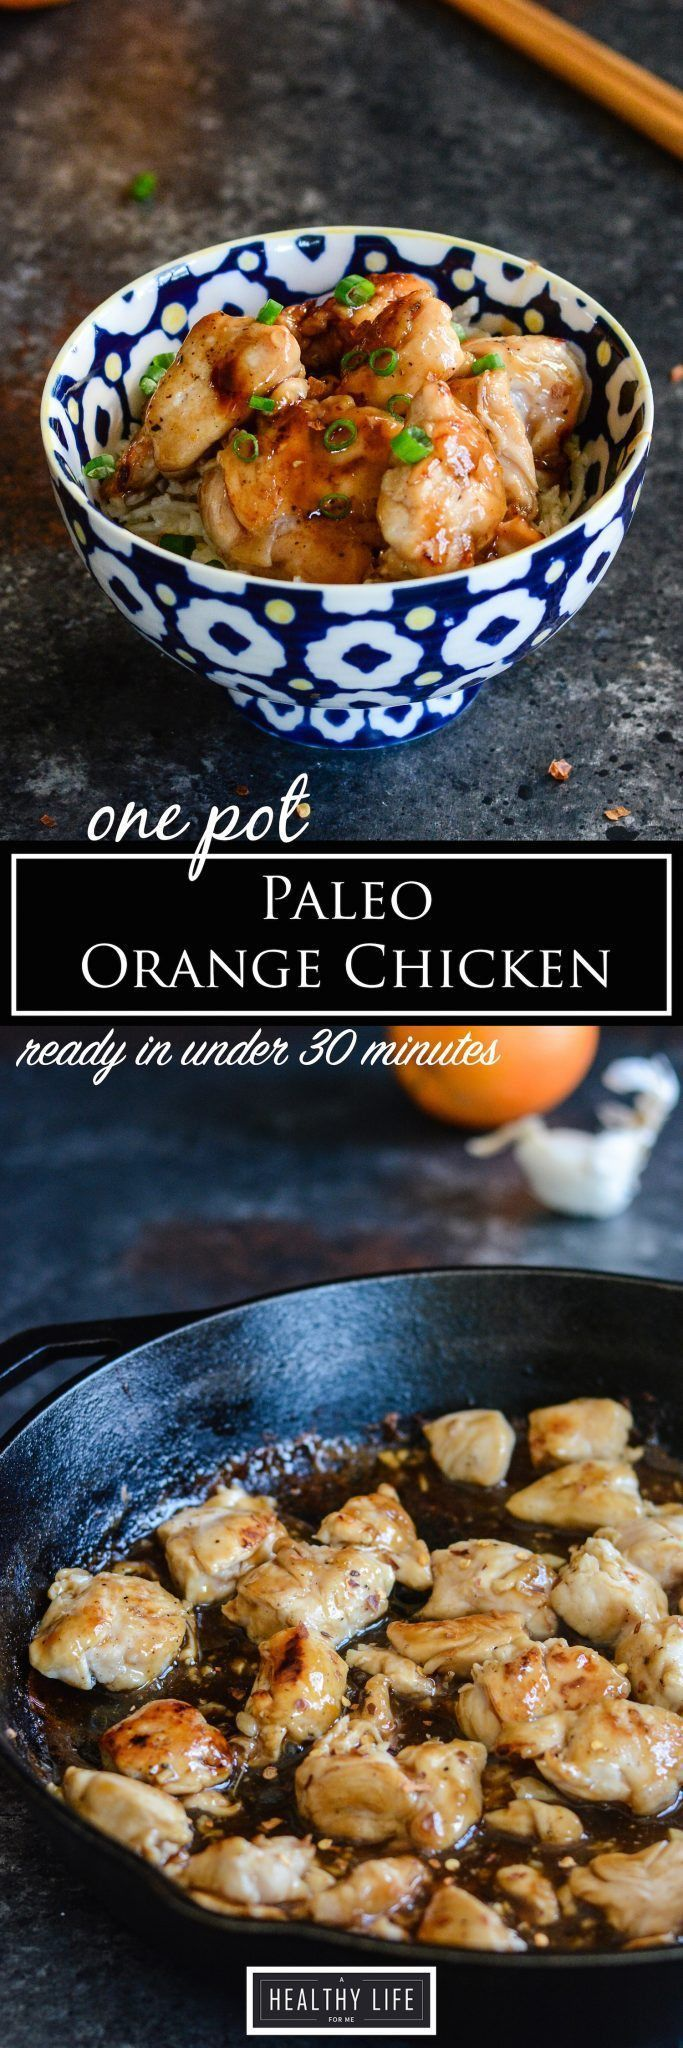 Paleo Orange Chicken One Pot Under 30 minute Recipe | Paleo Recipe | Gluten Free Recipe | Weeknight Dinner Recipe | Kid Friendly Recipe | Healthy Recipe | Macro Recipe